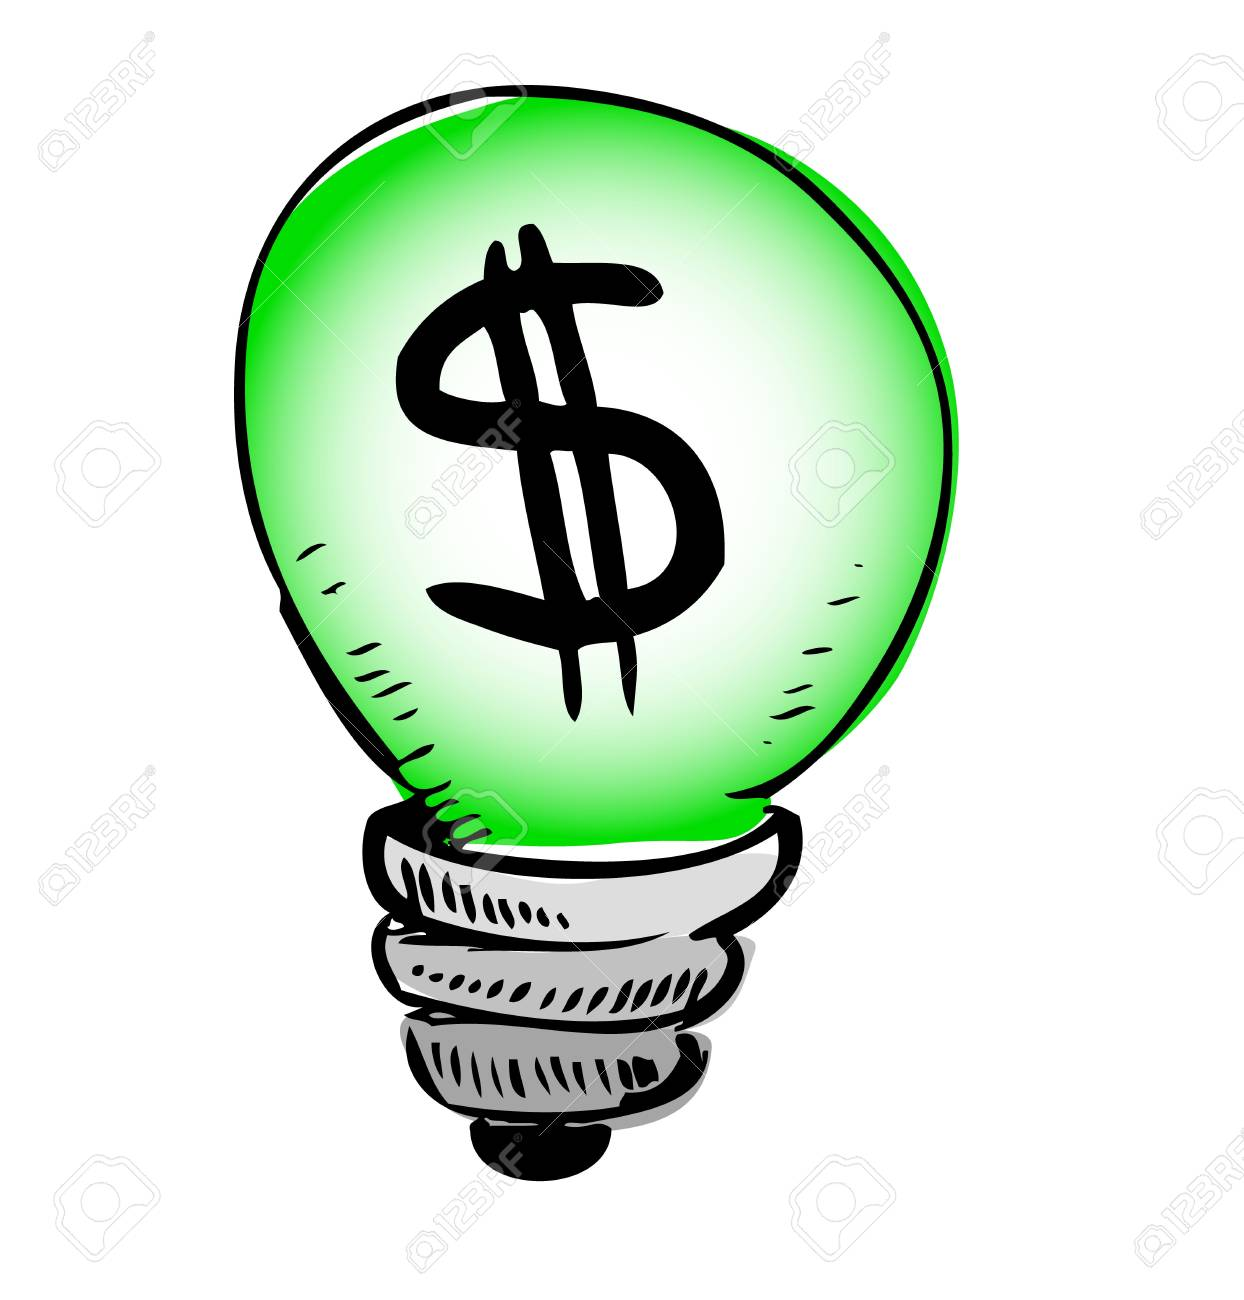 Green Light Bulb With Dollar Symbol Inside Royalty Free Cliparts